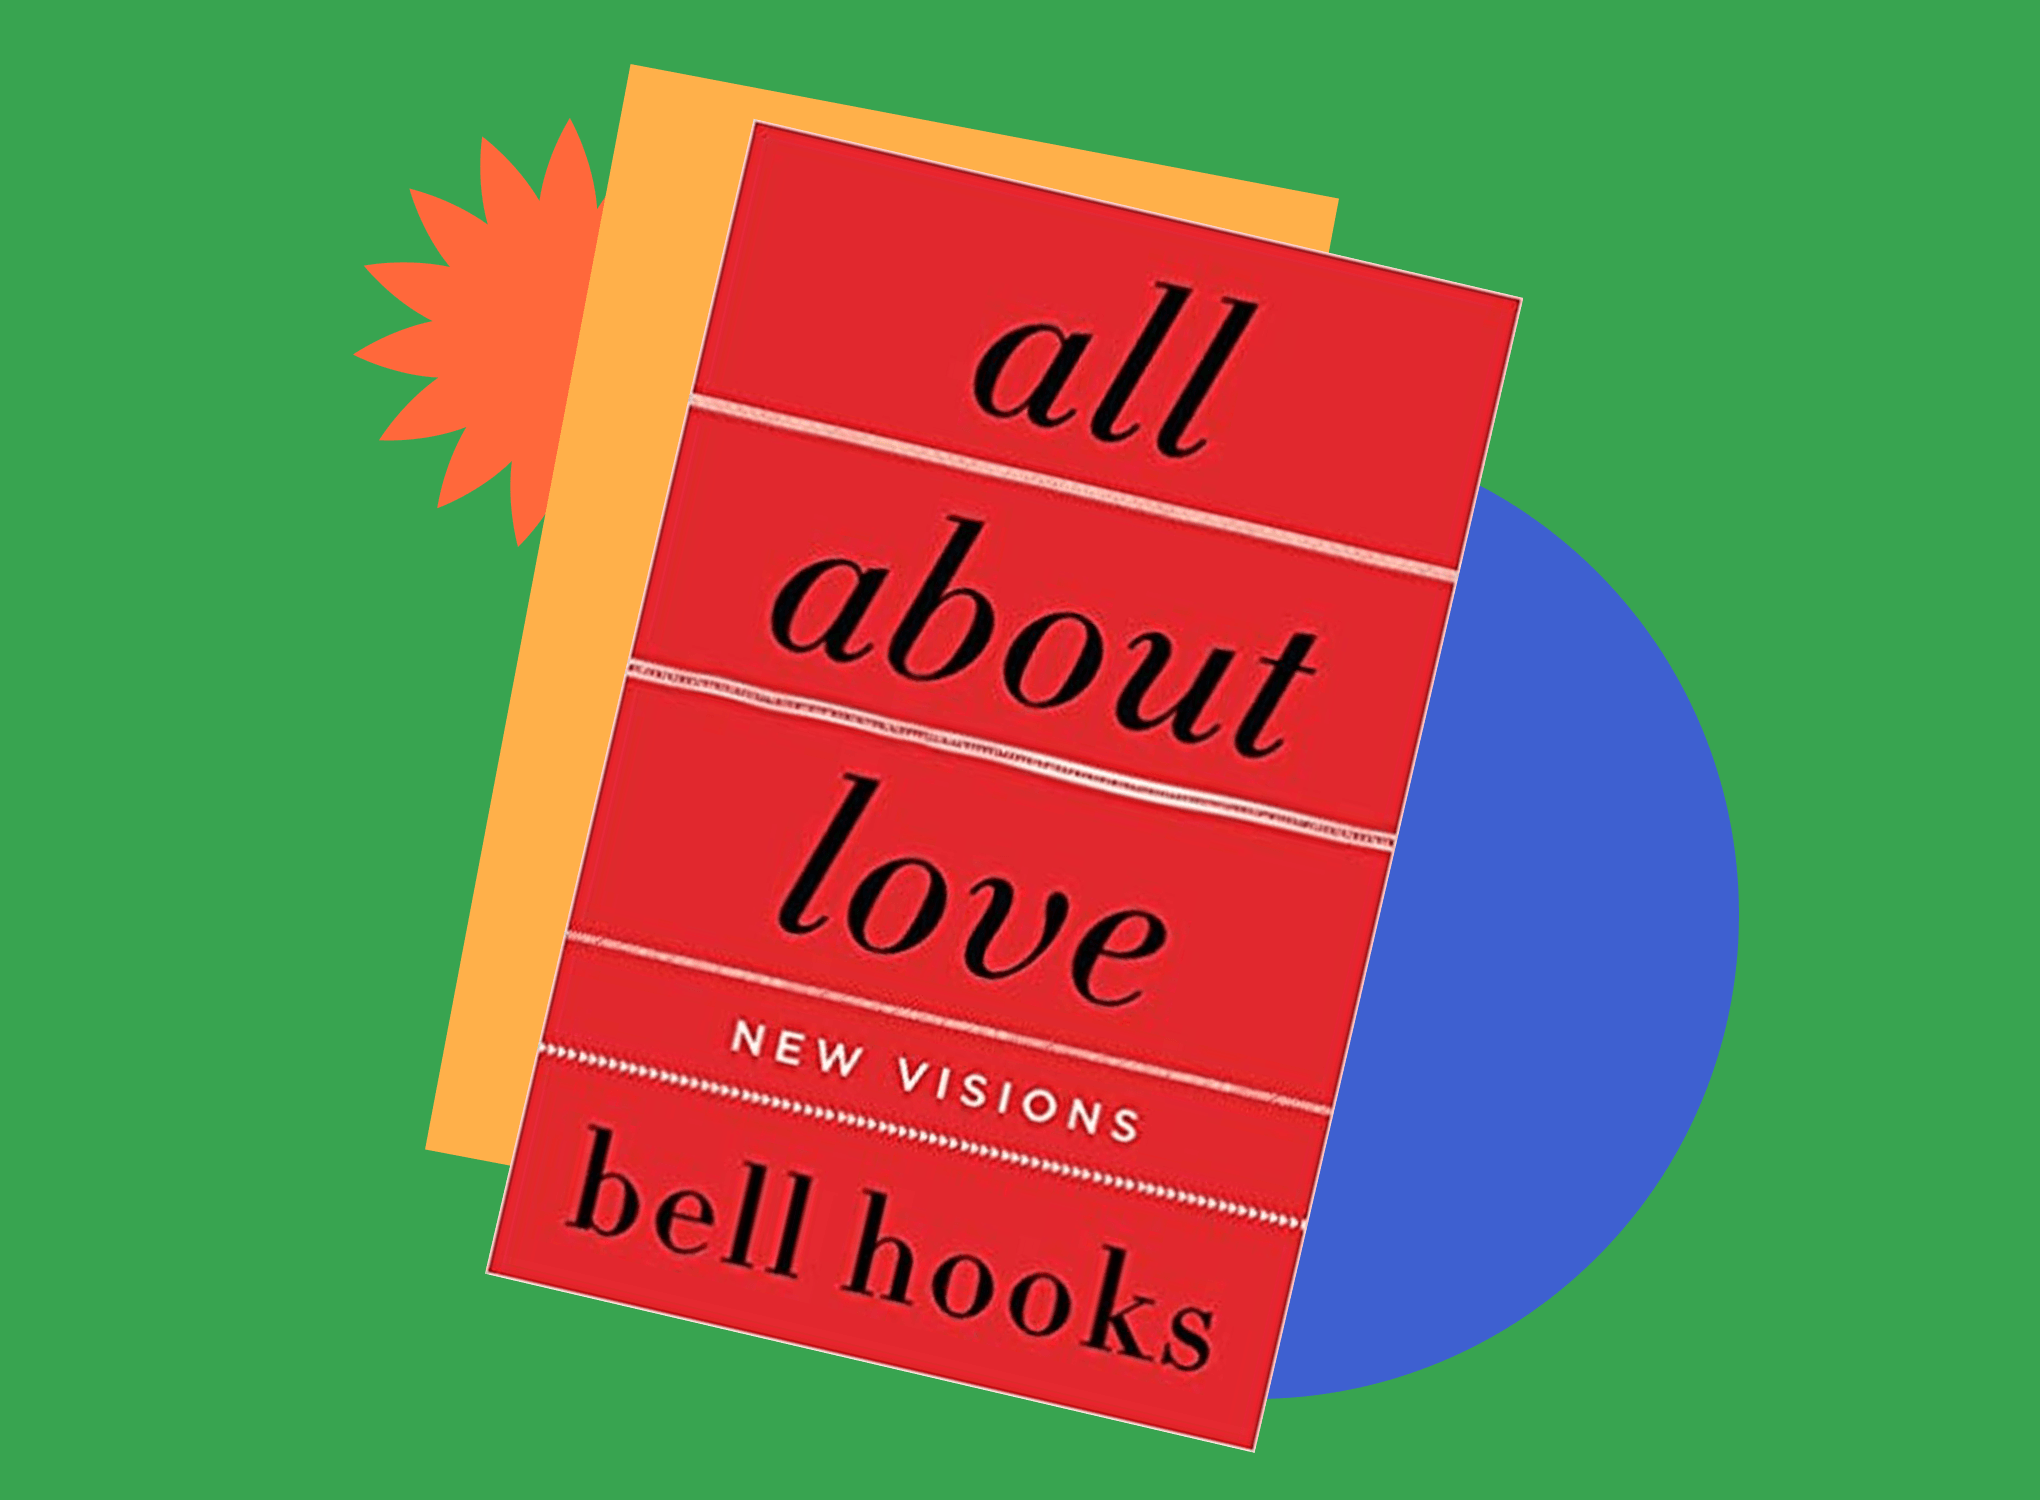 Book jacket cover for All About Love: New Visions by bell hooks.